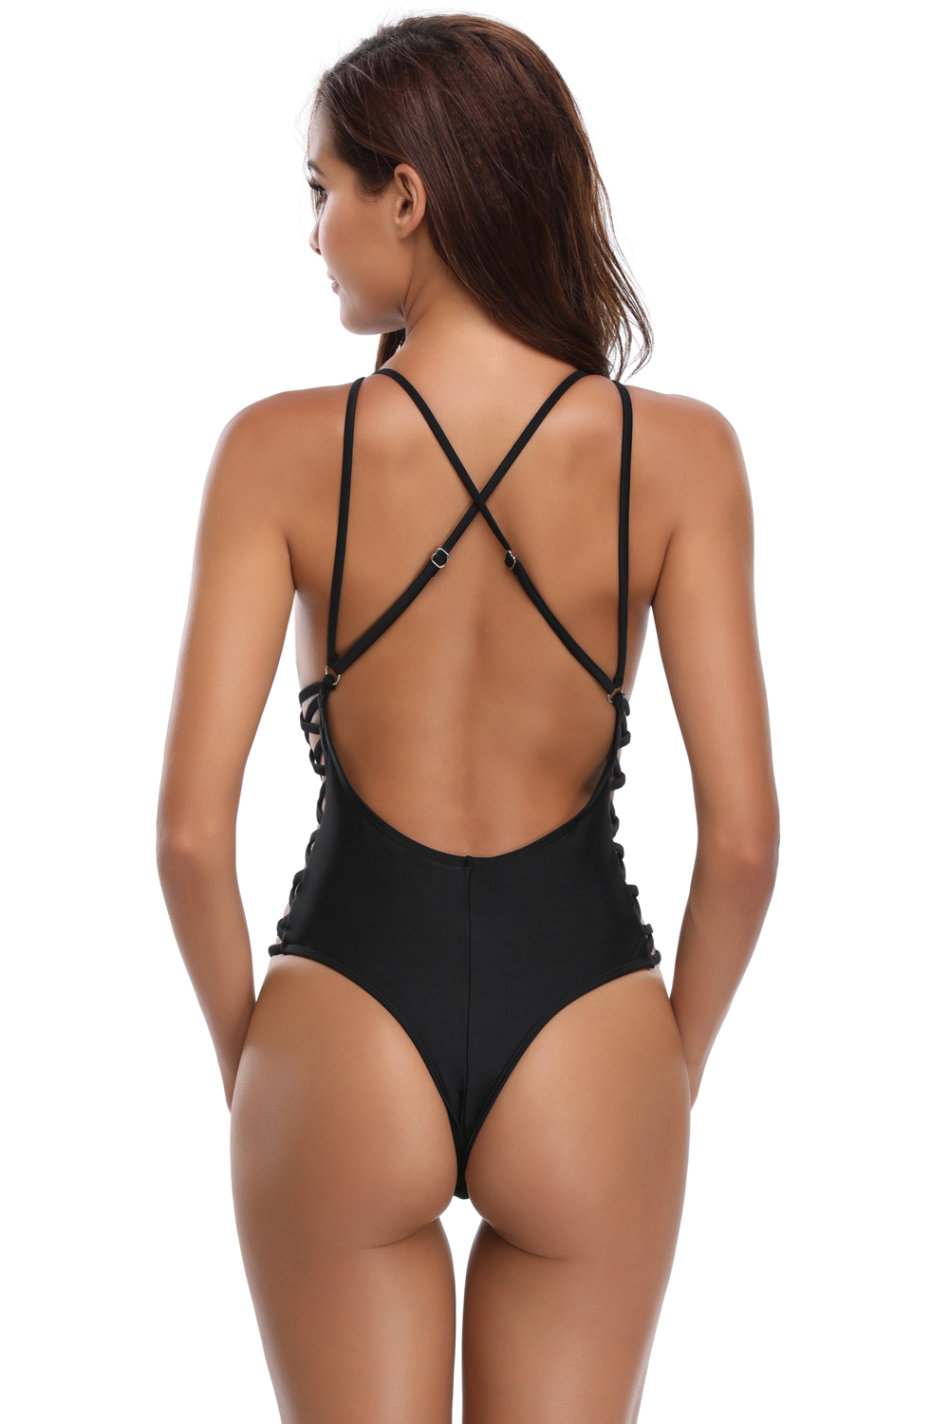 Find great deals on eBay for Black Monokini in Swimwear and Women's Clothing. Shop with confidence.